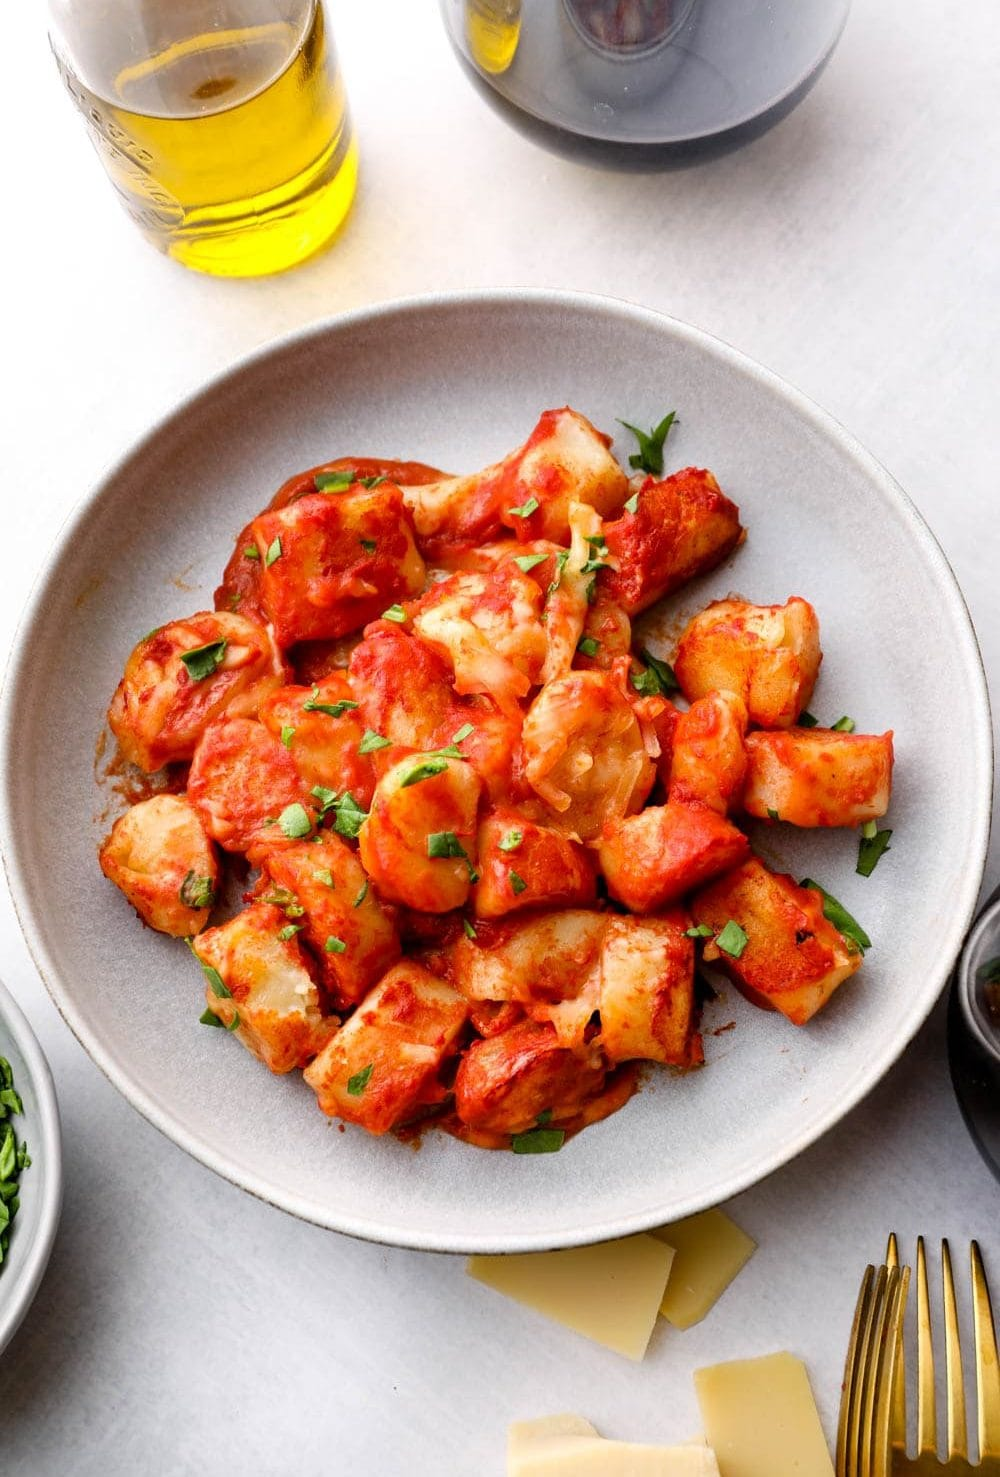 Gluten Free Gnocchi served with tomato sauce and vegan cheese.